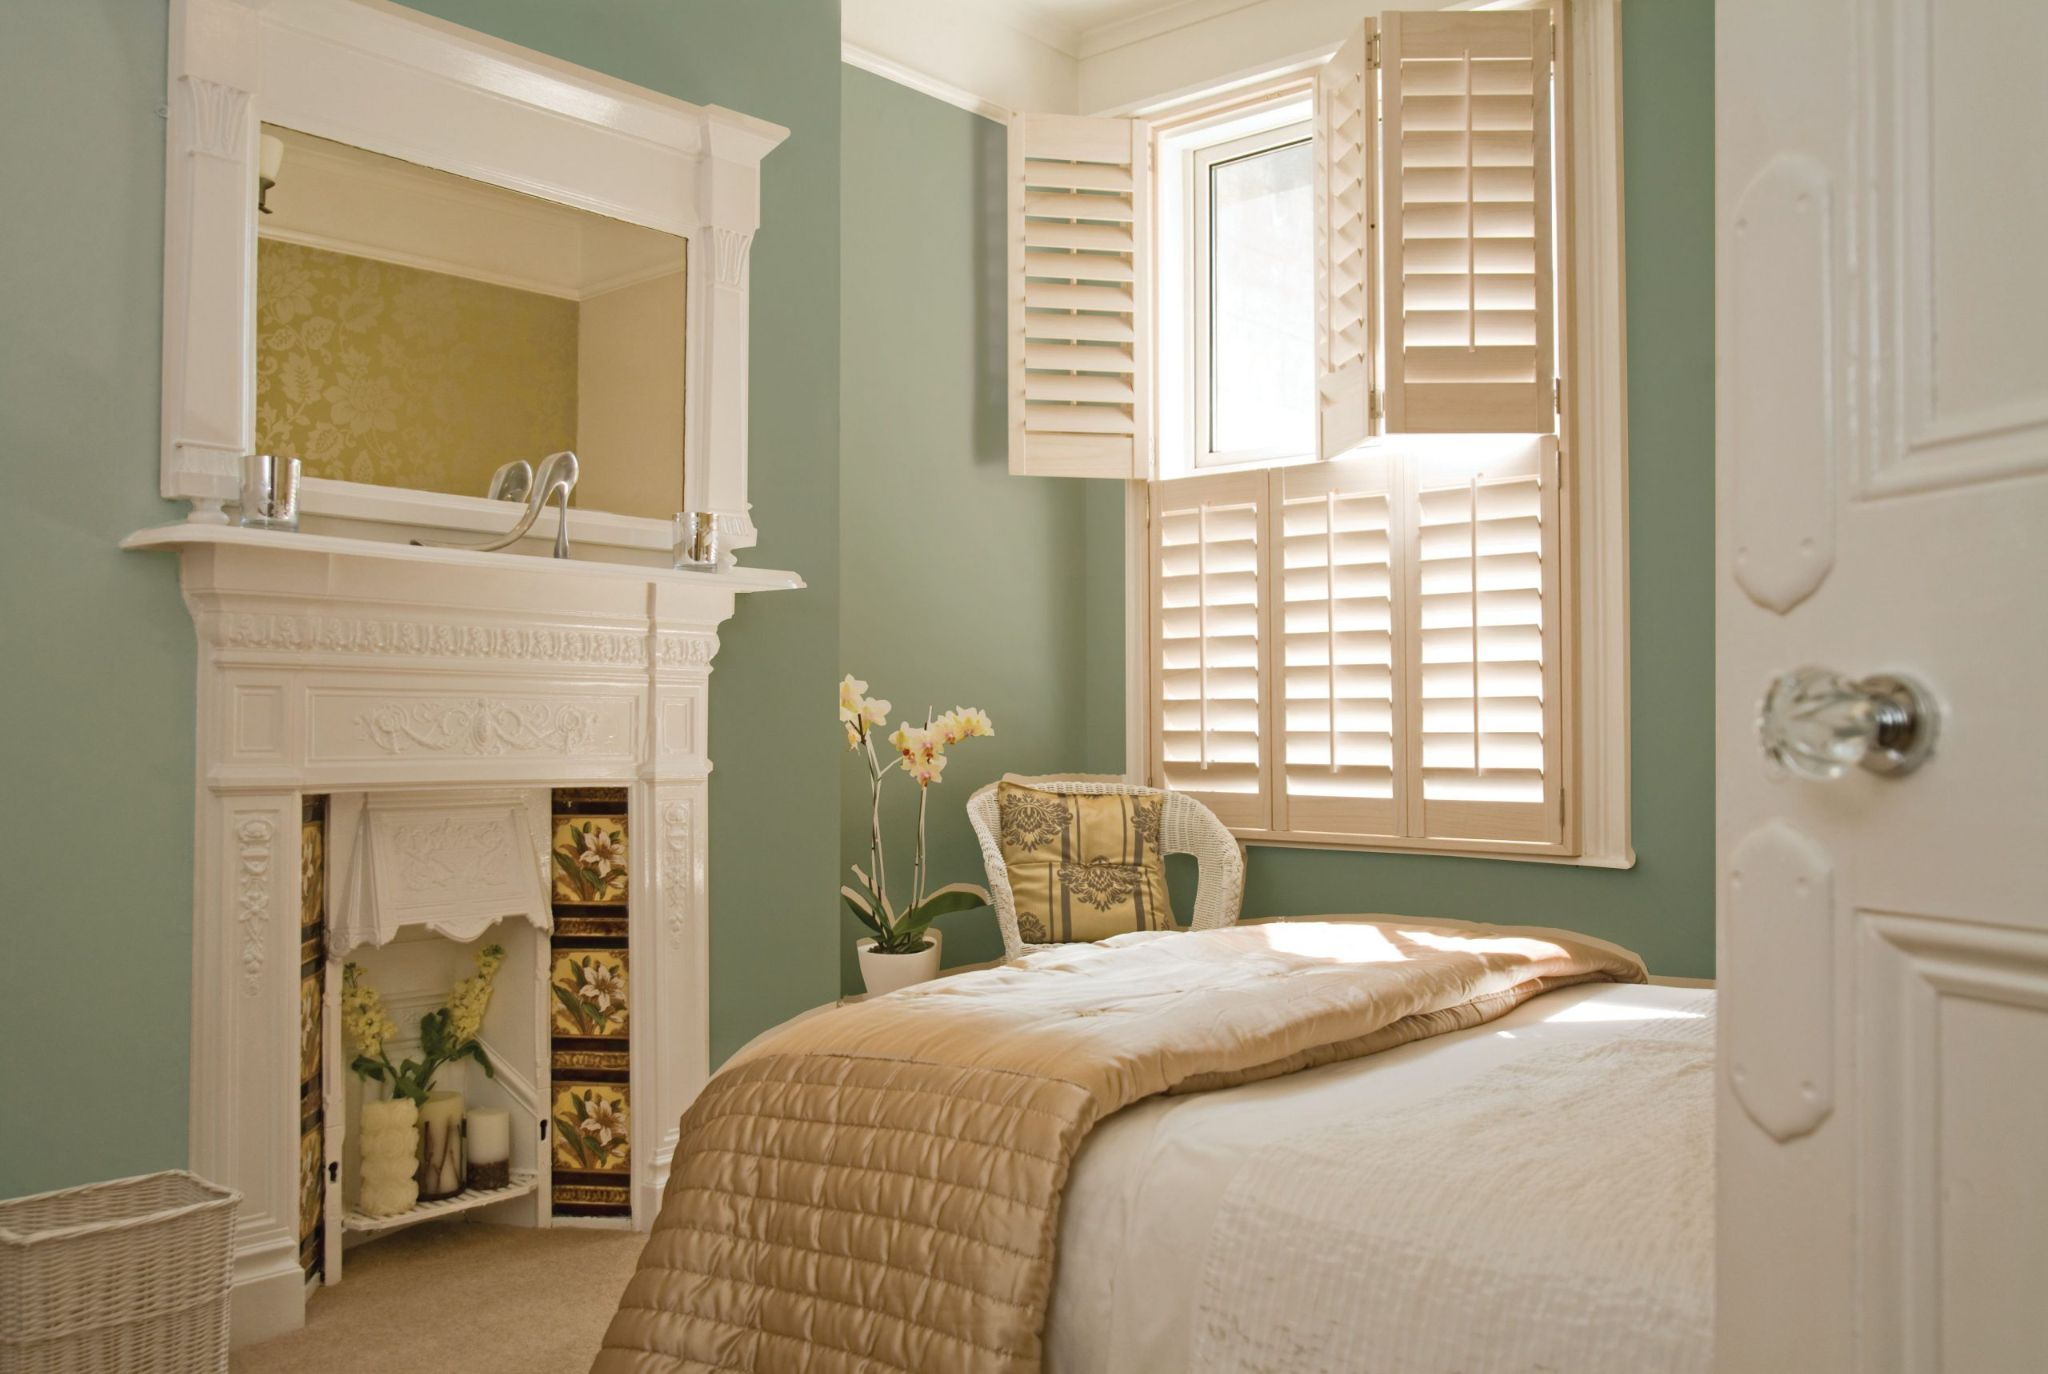 Bedroom Window Treatment Ideas with Classic Shutters